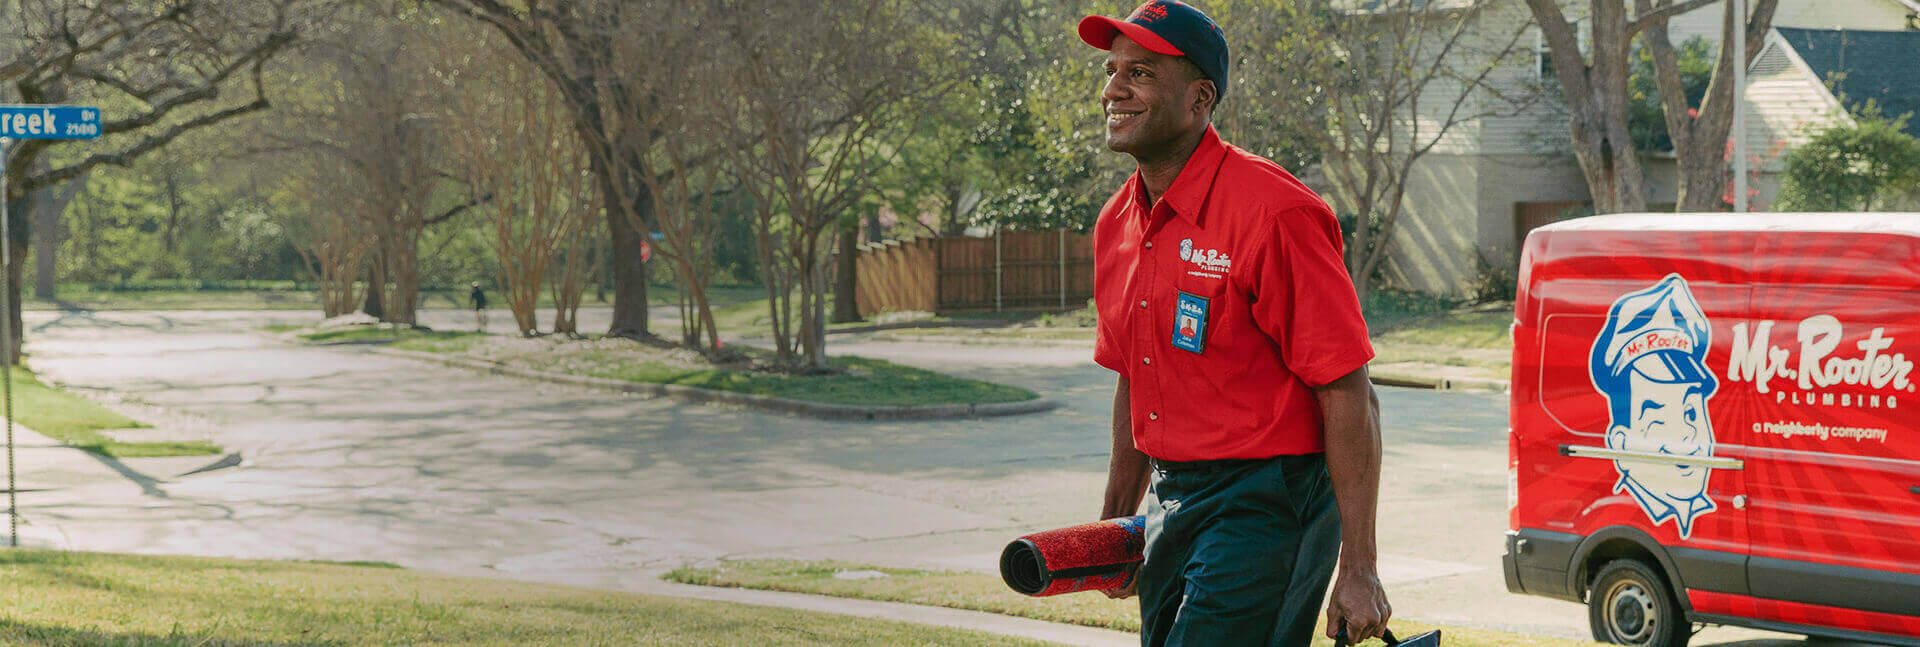 Residential Services In Newark Mr Rooter Plumbing